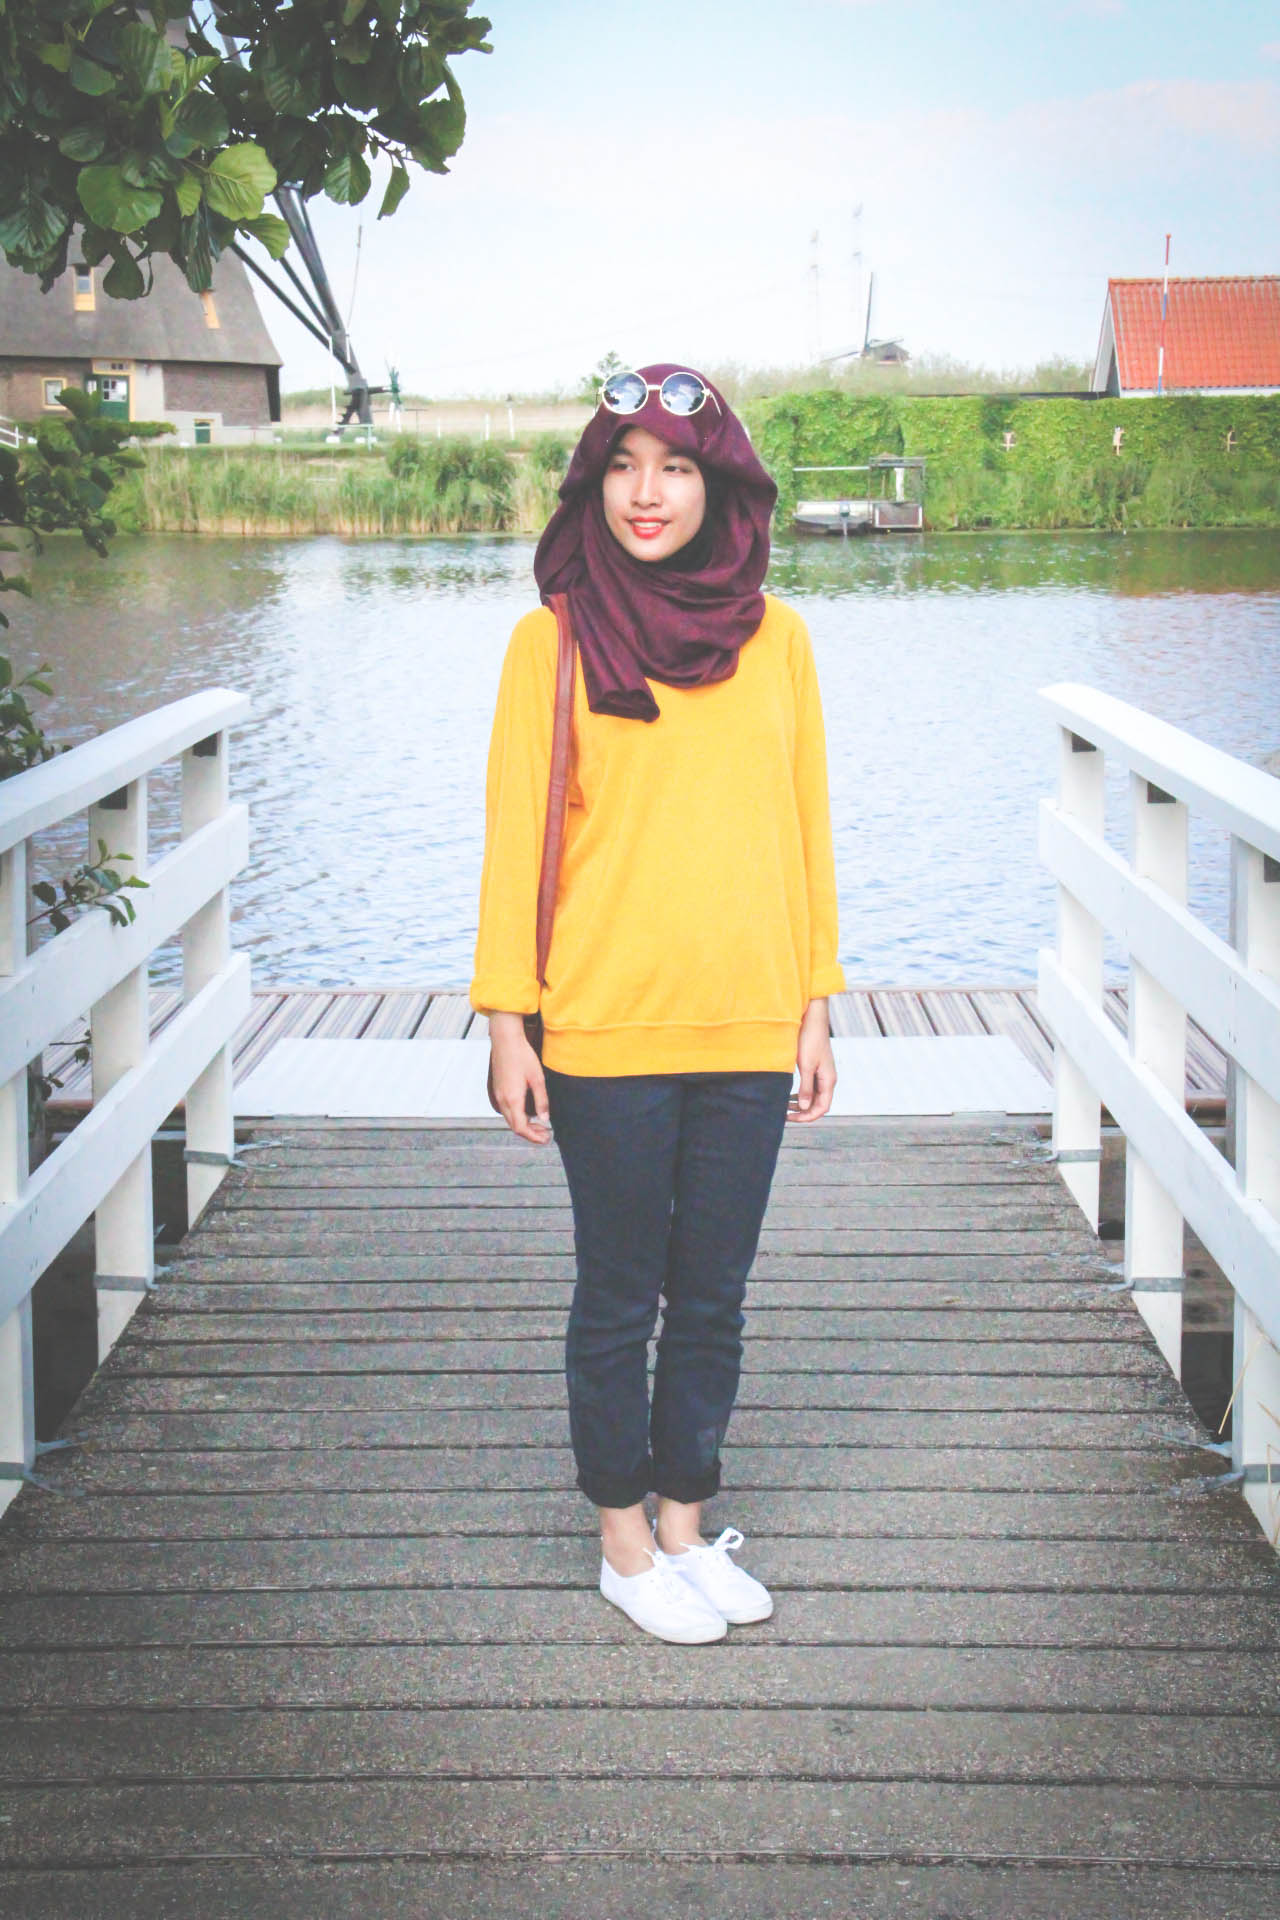 Summer, Fashion, Colourblocking, colour blocking, hijabi, tudung, fashion blogger, style blogger, travel blogger, fashion blog, stye blog, hijabi blogger